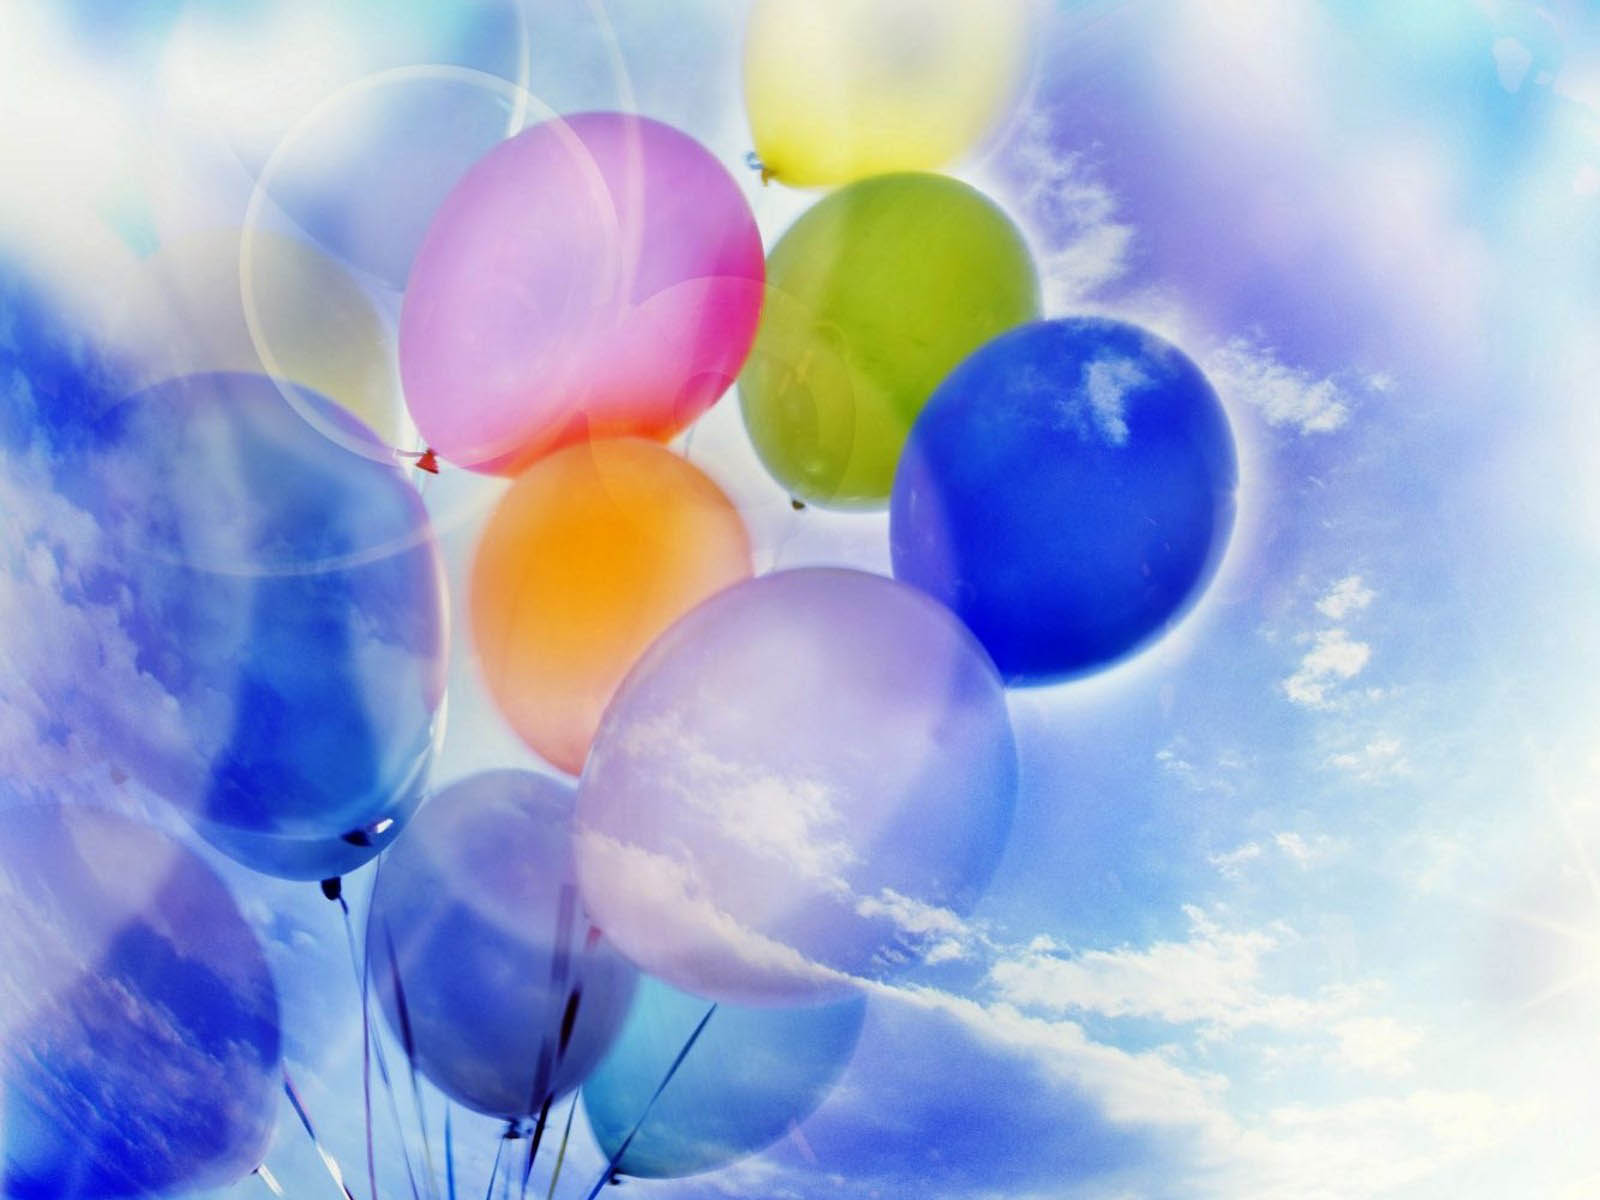 wallpapers: Balloons Wallpapers